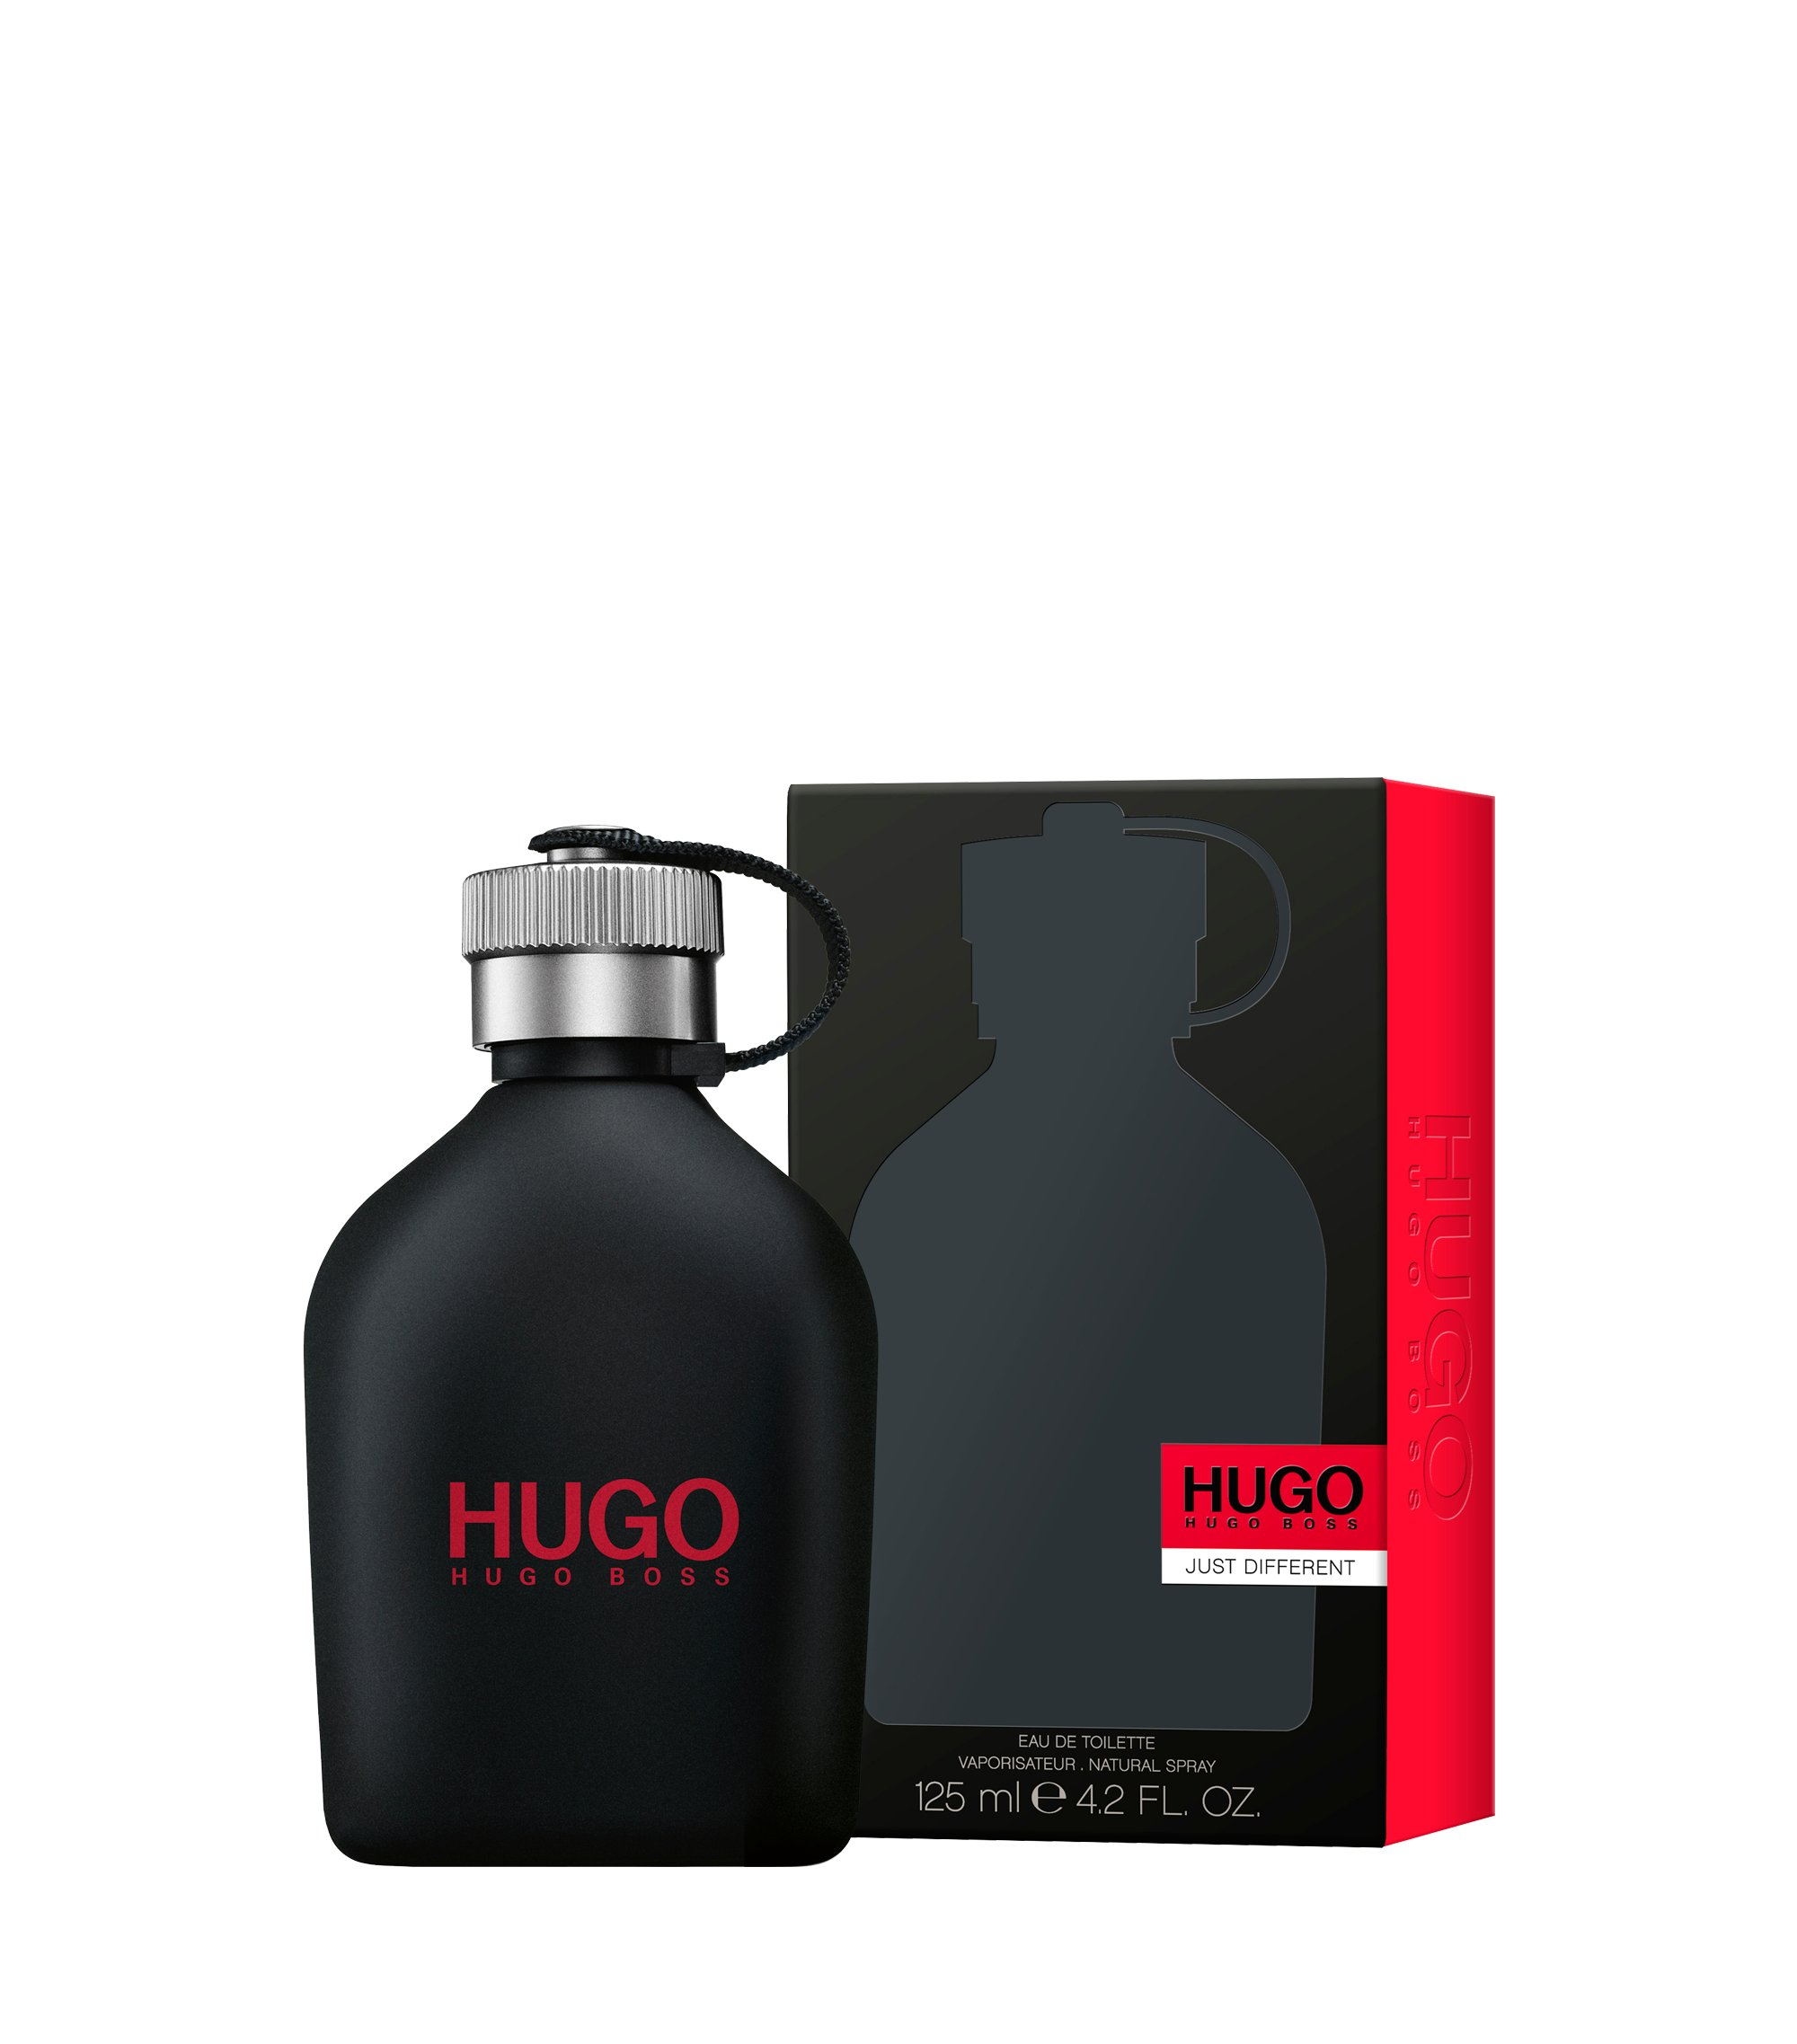 Eau de toilette HUGO Just Different de 125 ml, Assorted-Pre-Pack